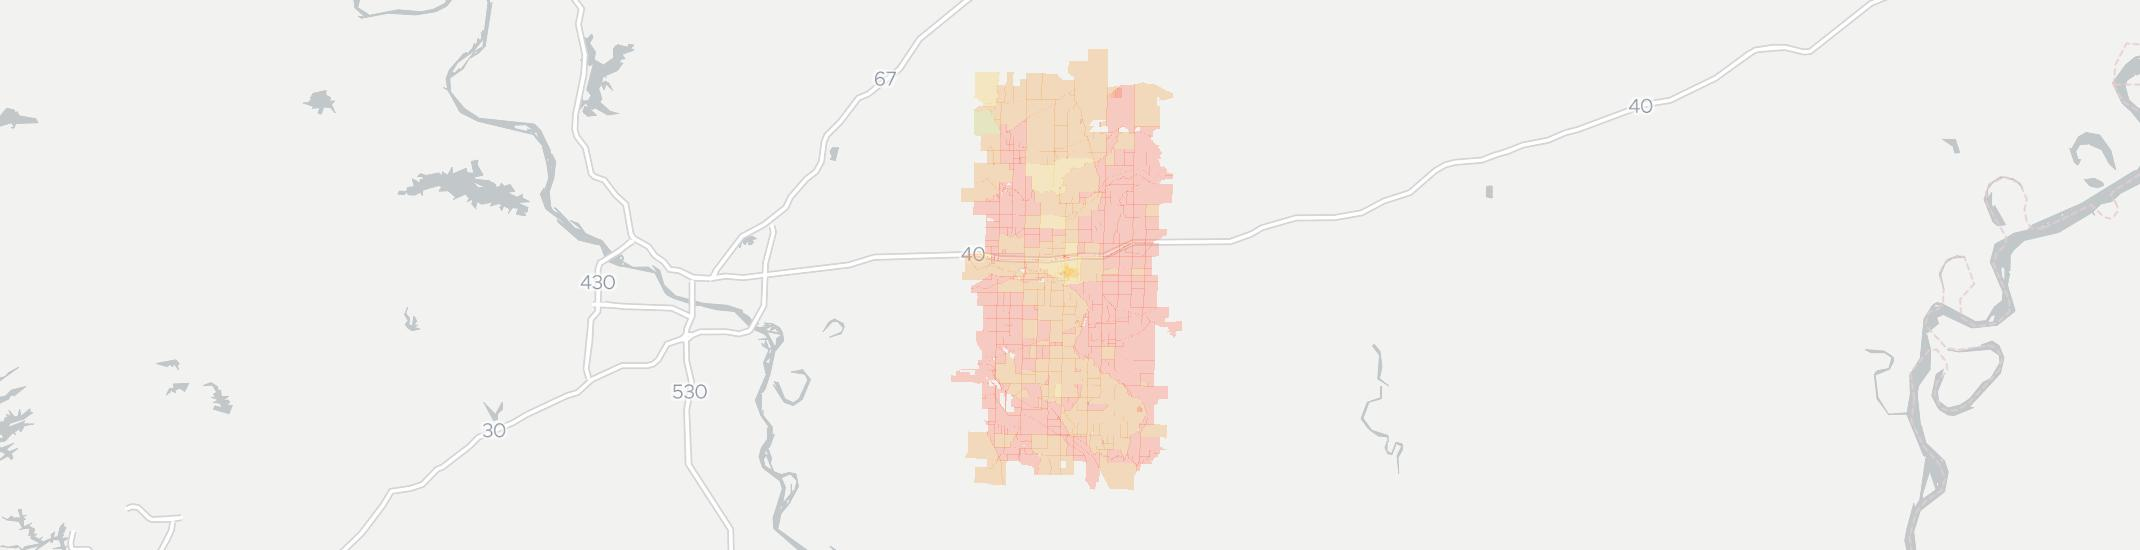 Internet Providers In Carlisle Ar Compare 8 Satellite Wiring Diagram Competition Map Click For Interactive